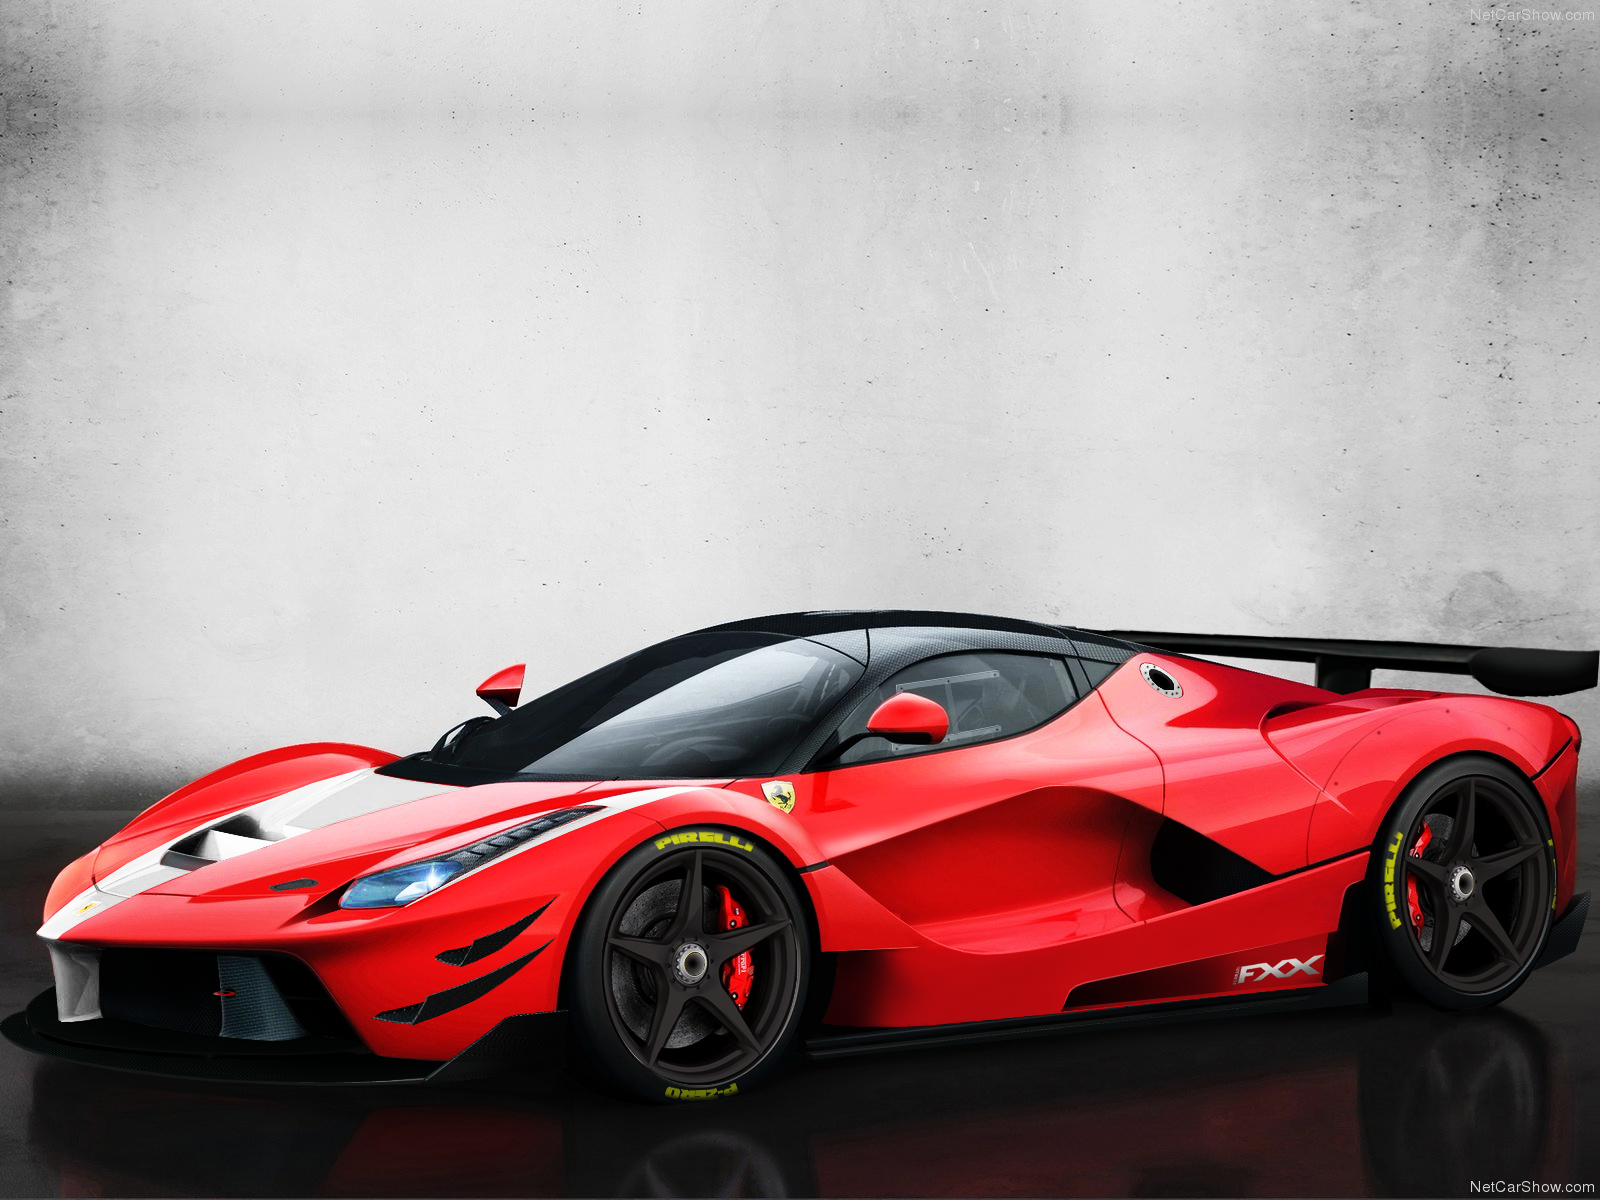 LaFerrari XX prototype sounds like a dream, until its suspension ...